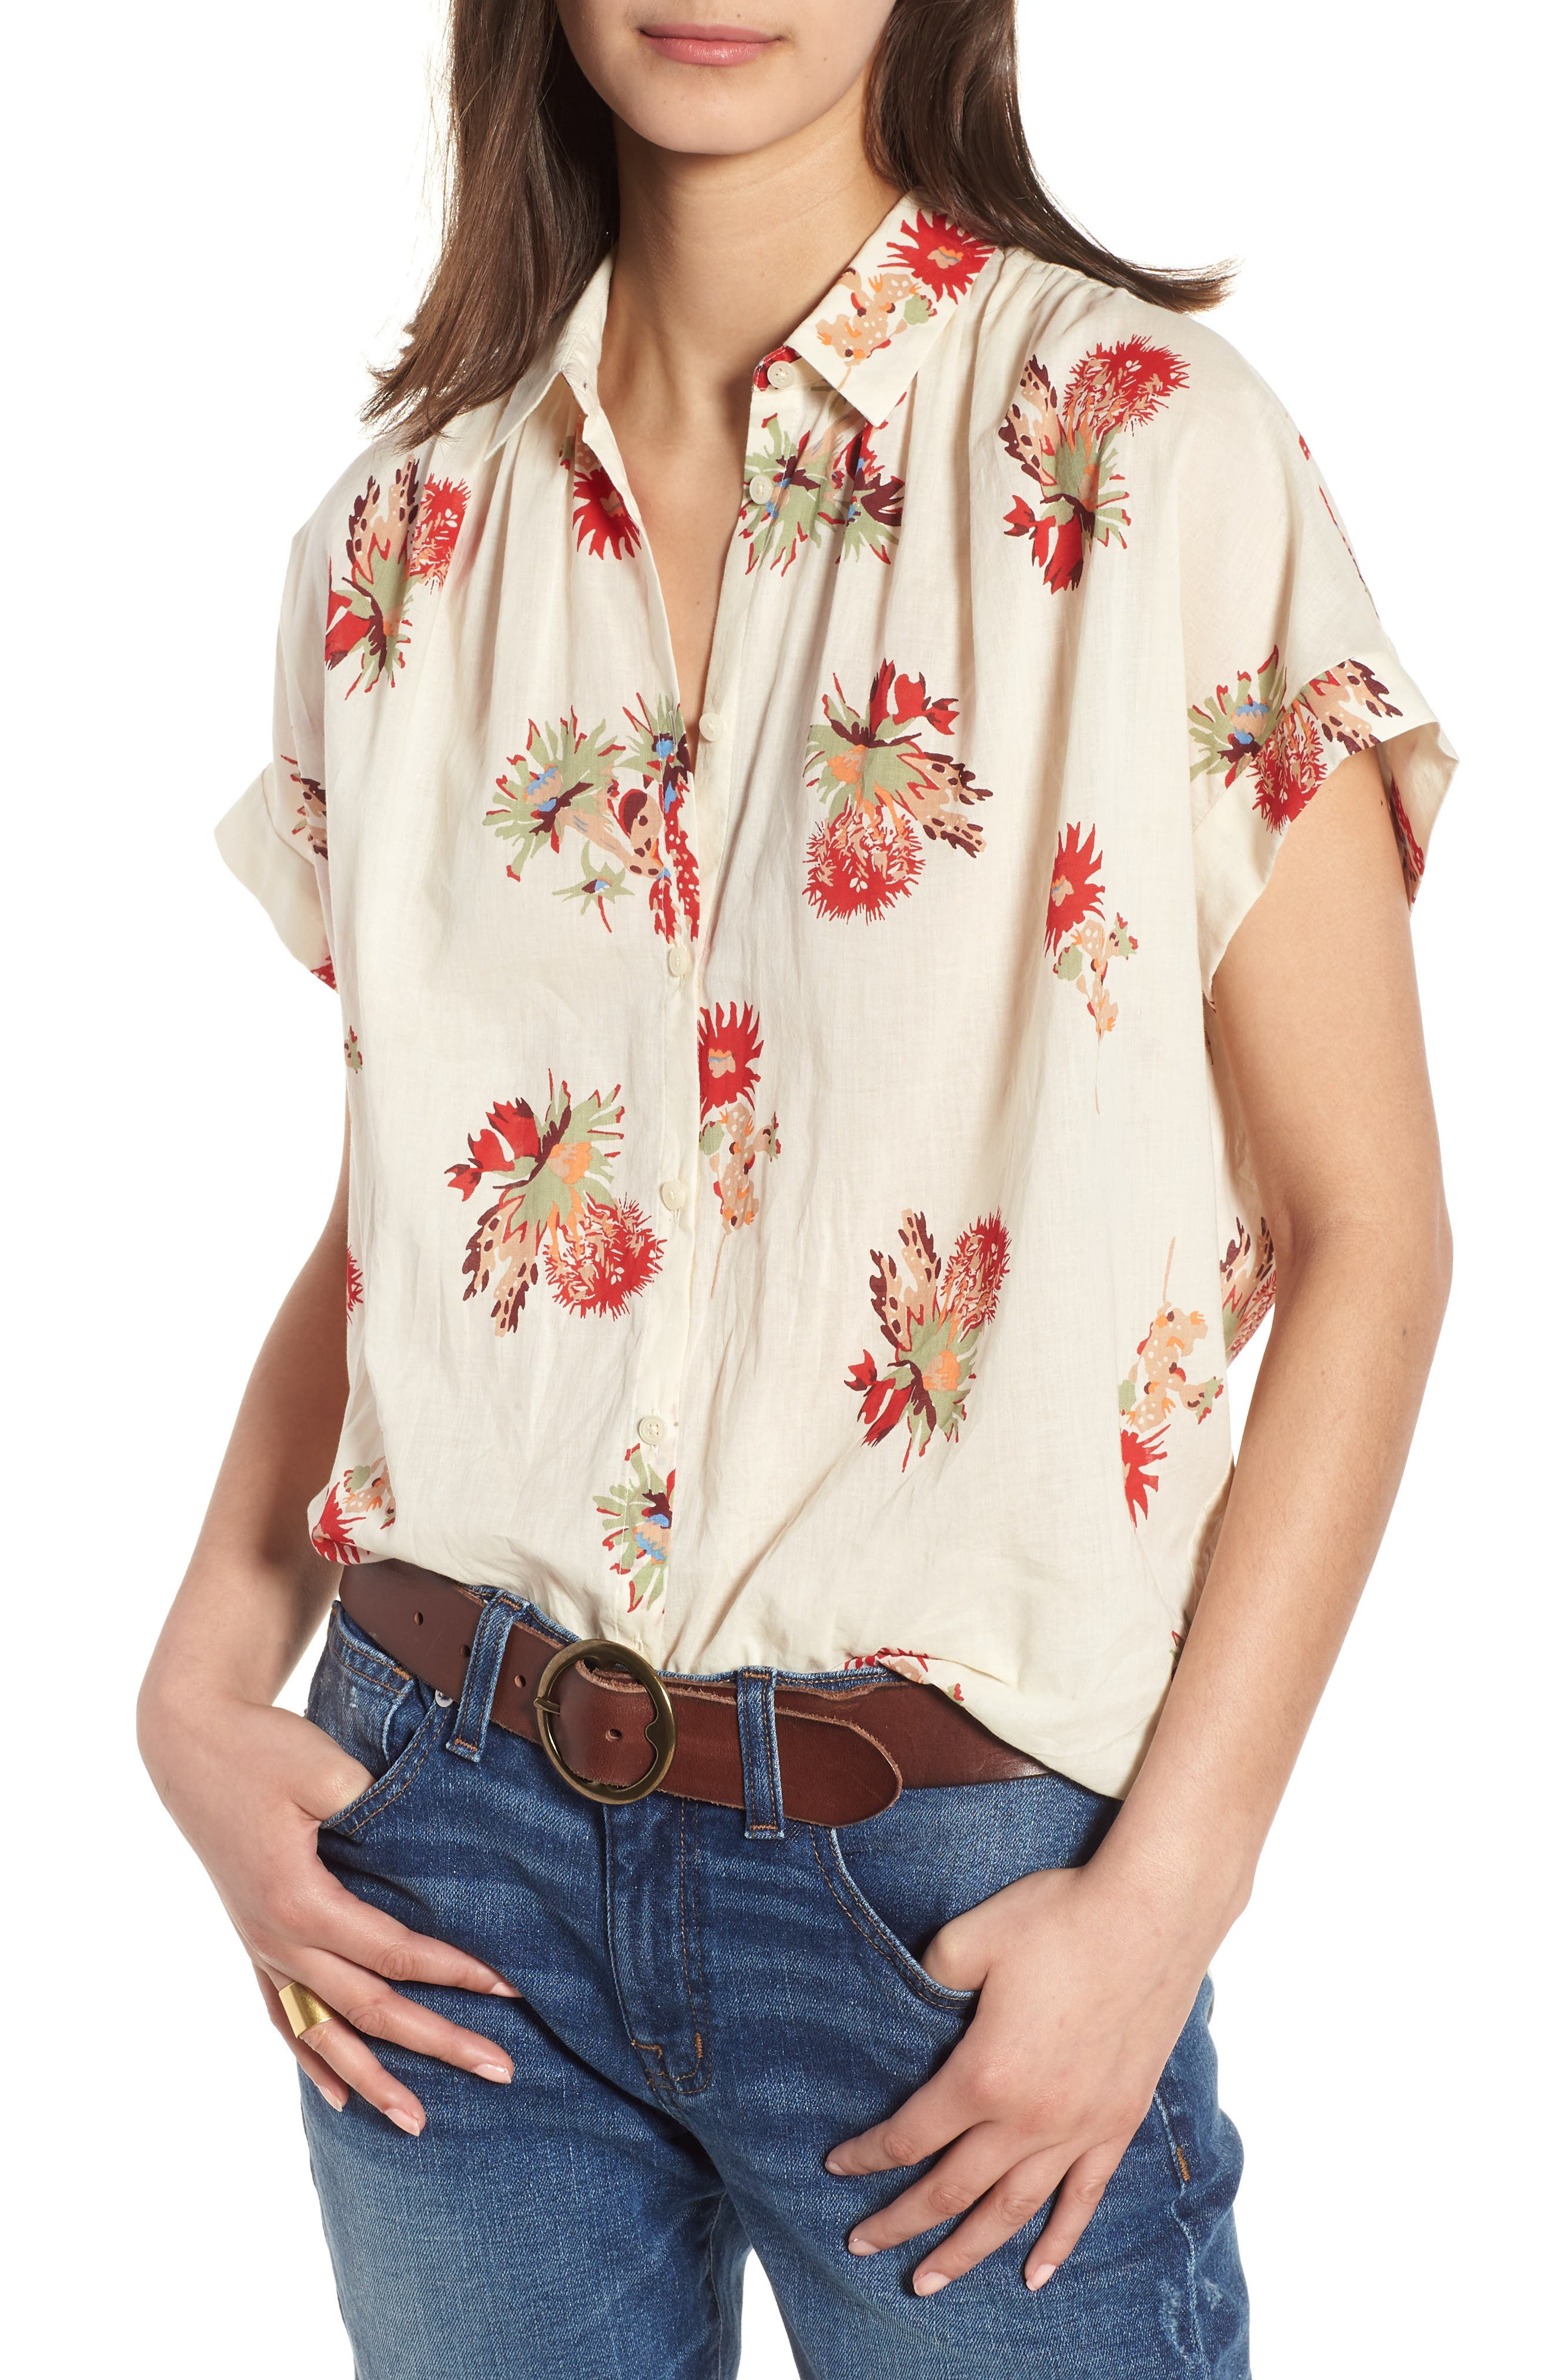 Central Cactus Floral Shirt,                             Main thumbnail 1, color,                             100